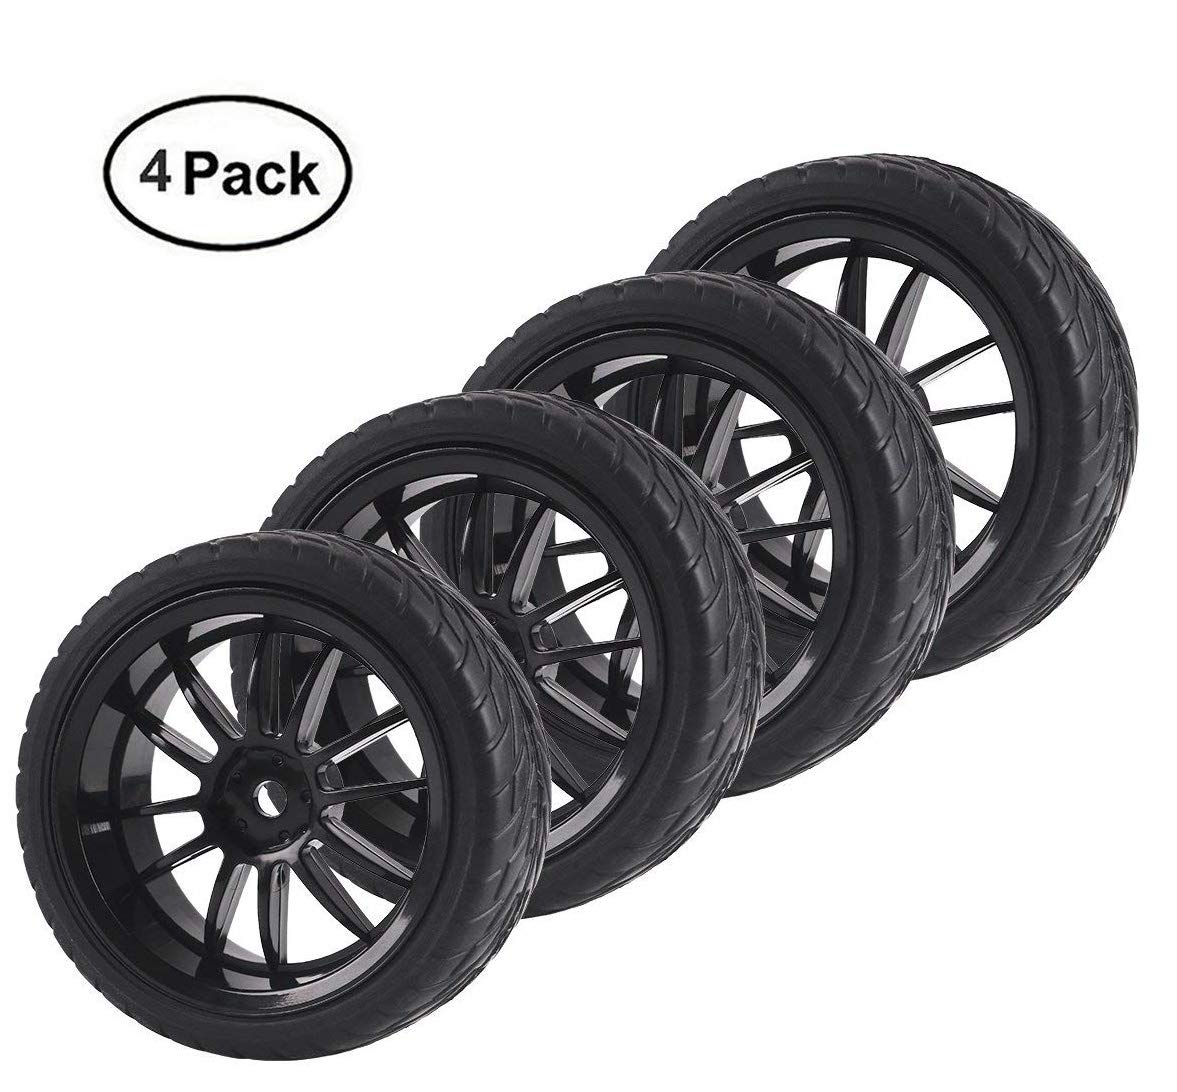 eb052188a6b Online Cheap wholesale Innovateking 12mm Hub RC Wheel Rim Tires for 1/10 RC  On-Road Drifting Car Buggy (Pack of 4) Tire & Wheel Sets Suppliers